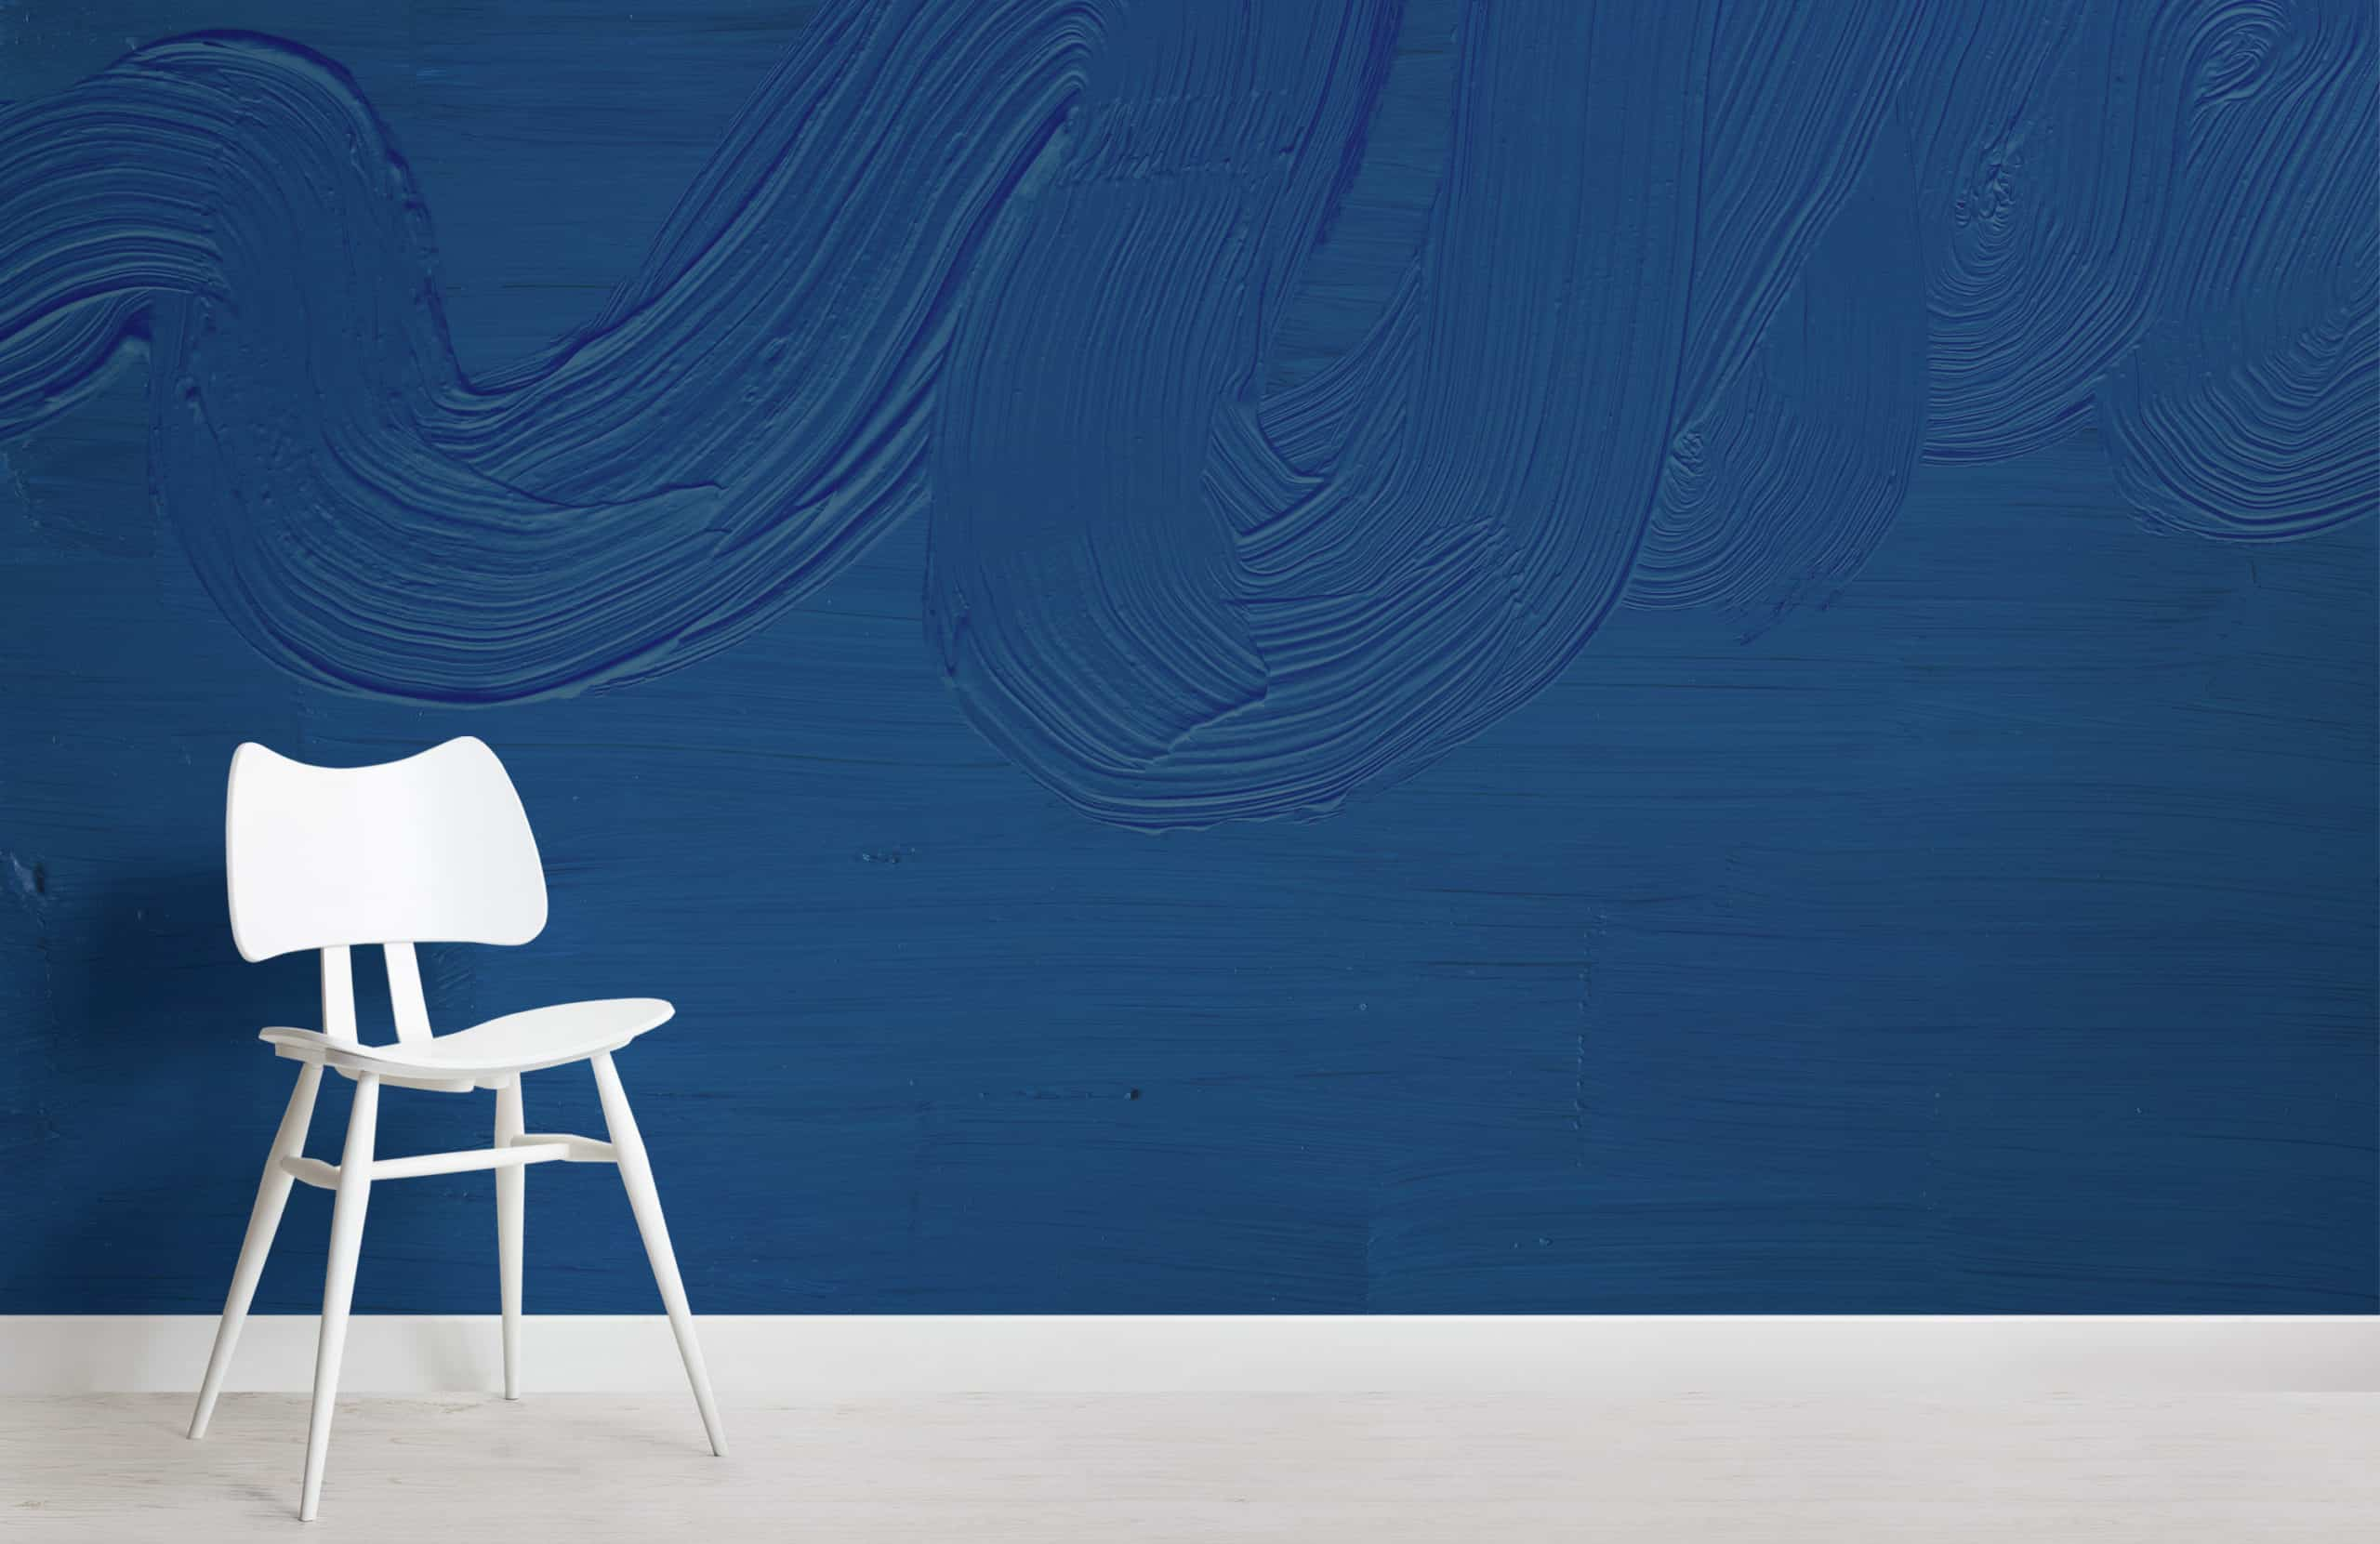 Dusk Classic Blue mural Chair Image scaled